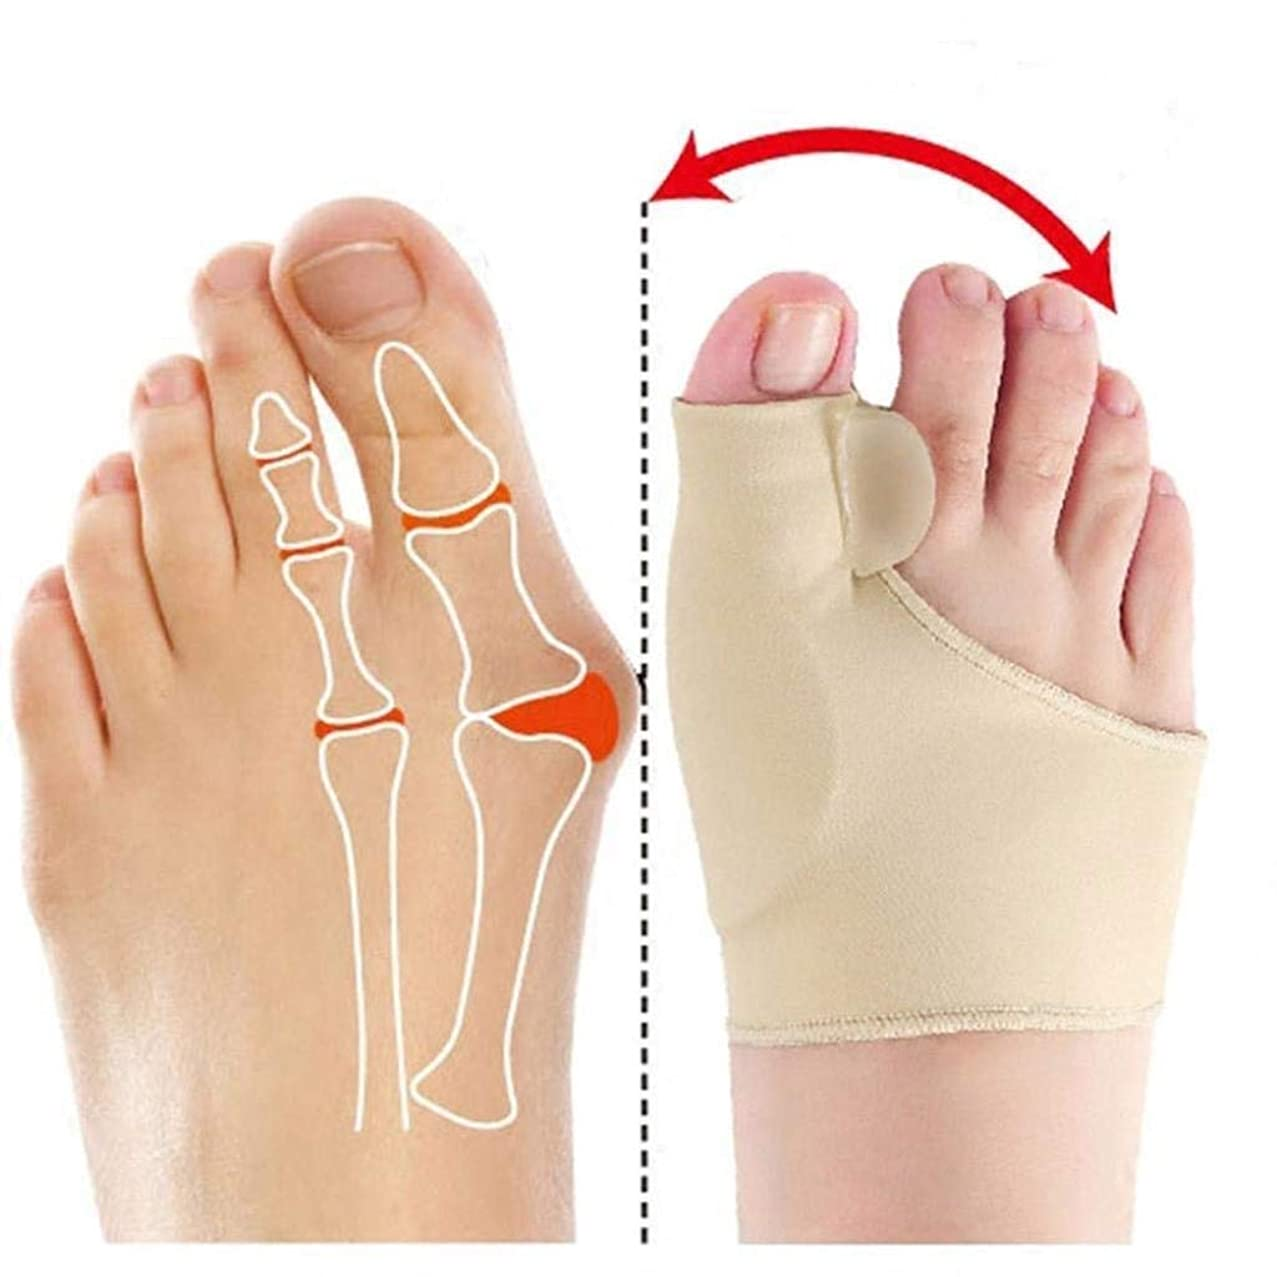 Dyong Thumb Toe Corrector Big Toe Straightener Toe Pain Relief Sleeve、Bunion Splint Support Sleeve with Built-in Silicone Gel Pad for Hallux Valgus Pain Relief